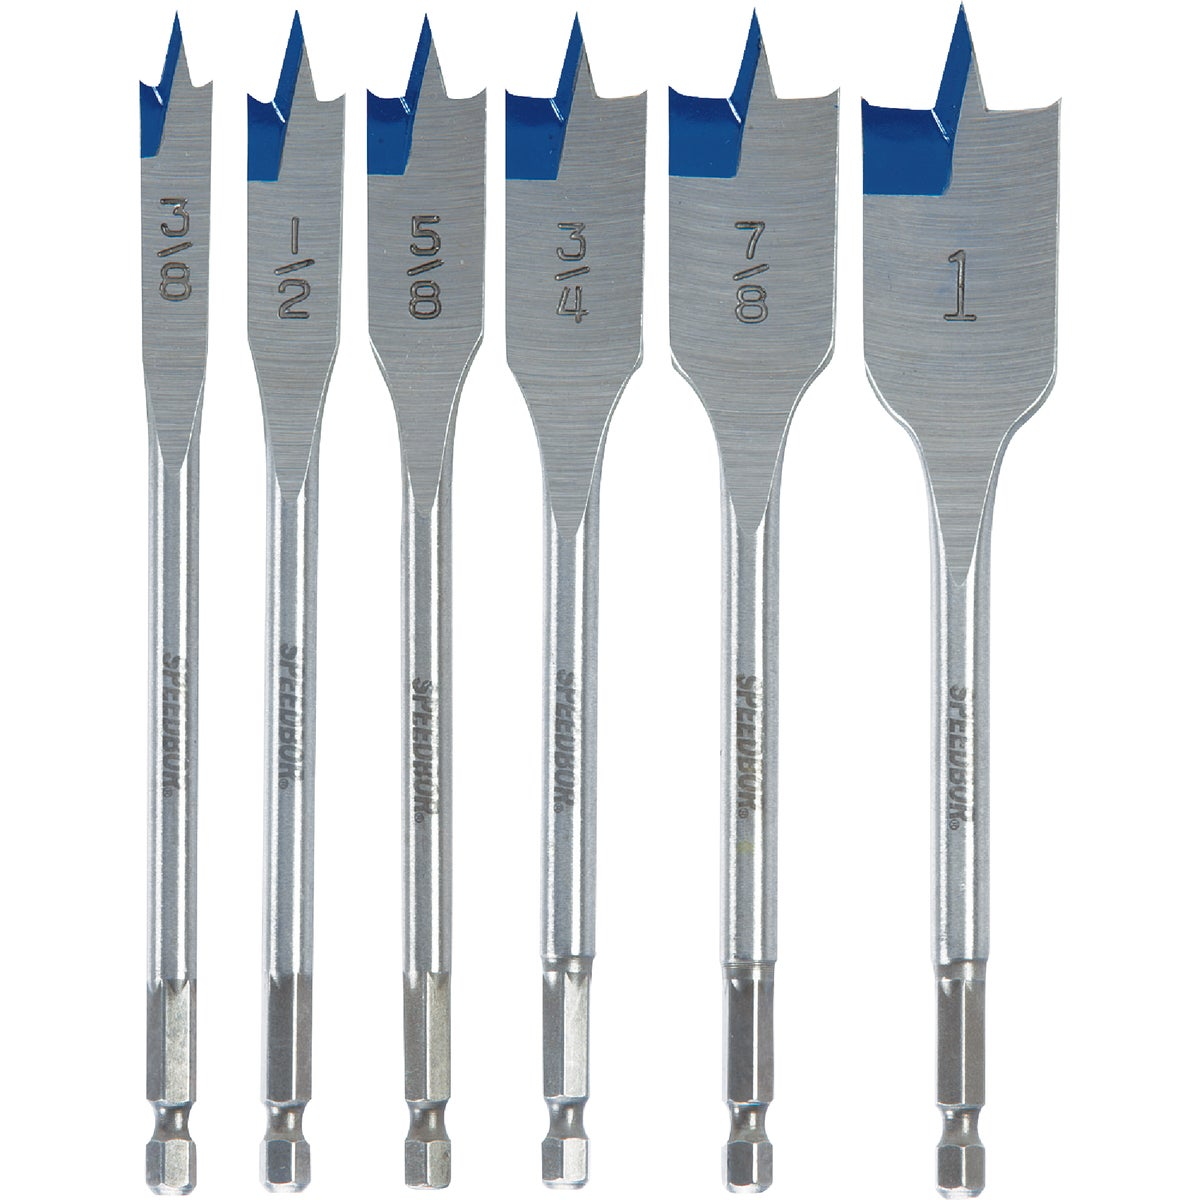 6PC BIT SET - 88886 by Irwin Industr Tool